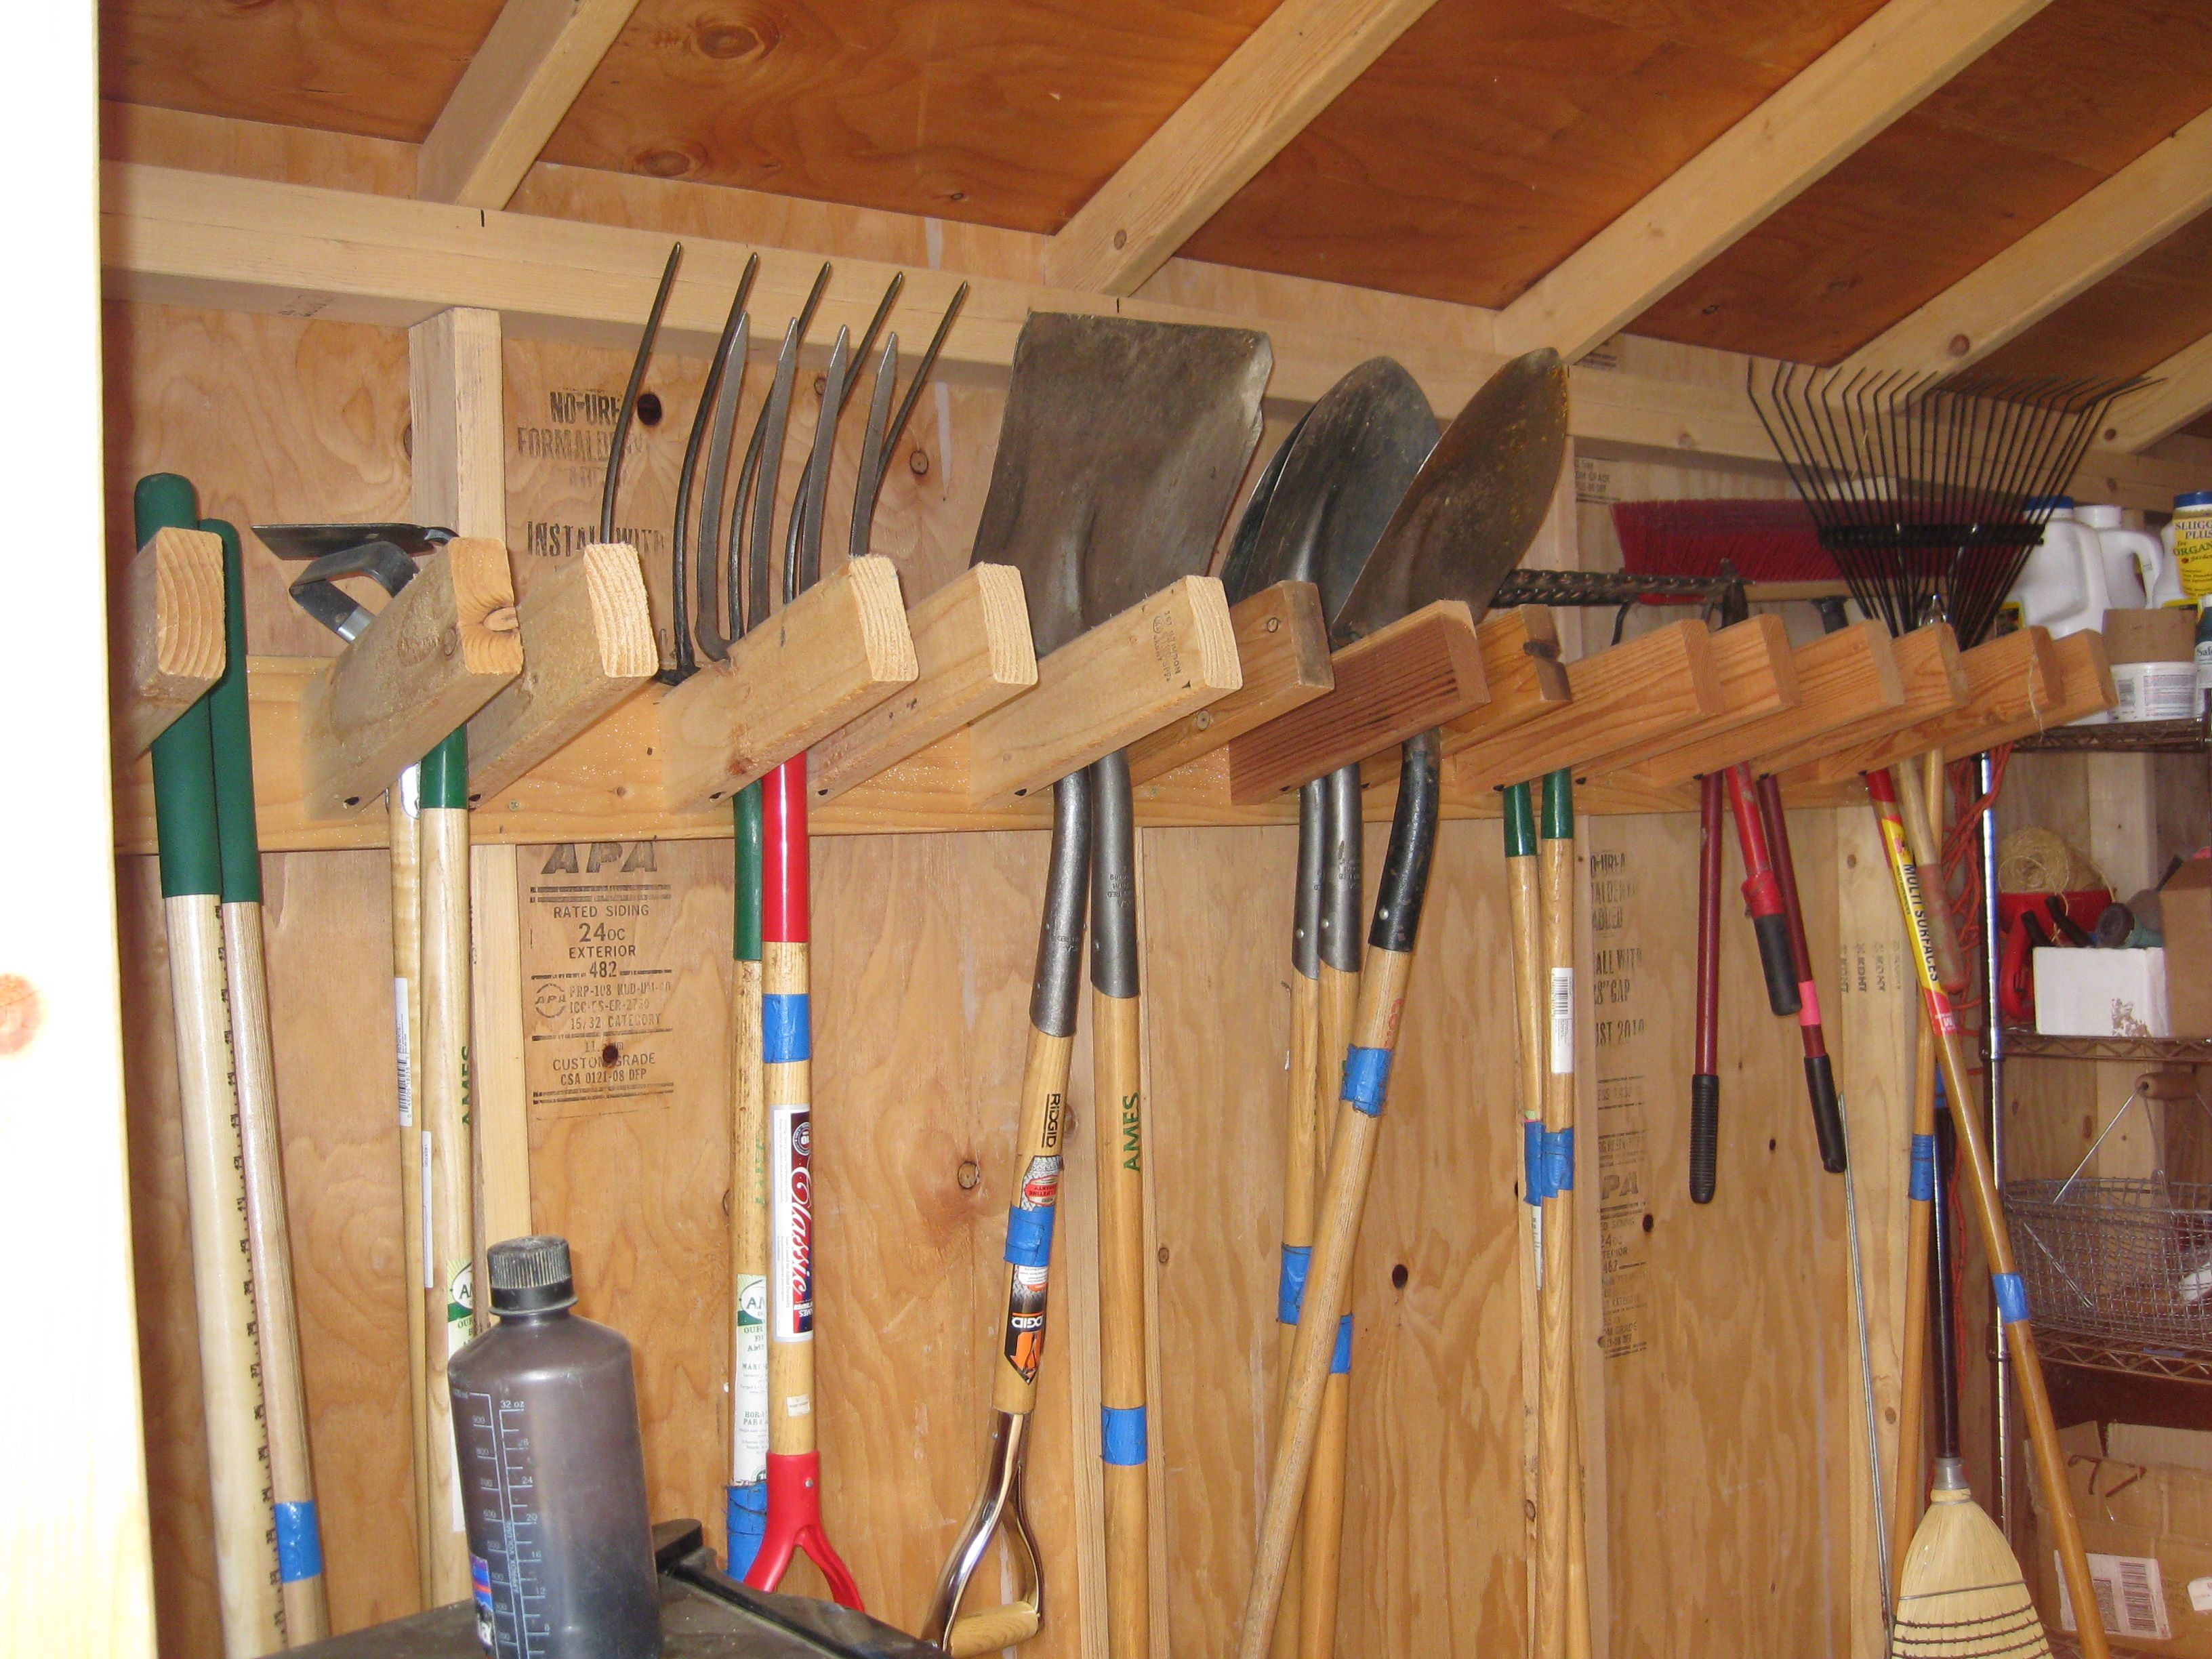 Storage Shed Organization Transform Garden Sheds Into Houses With These Makeover